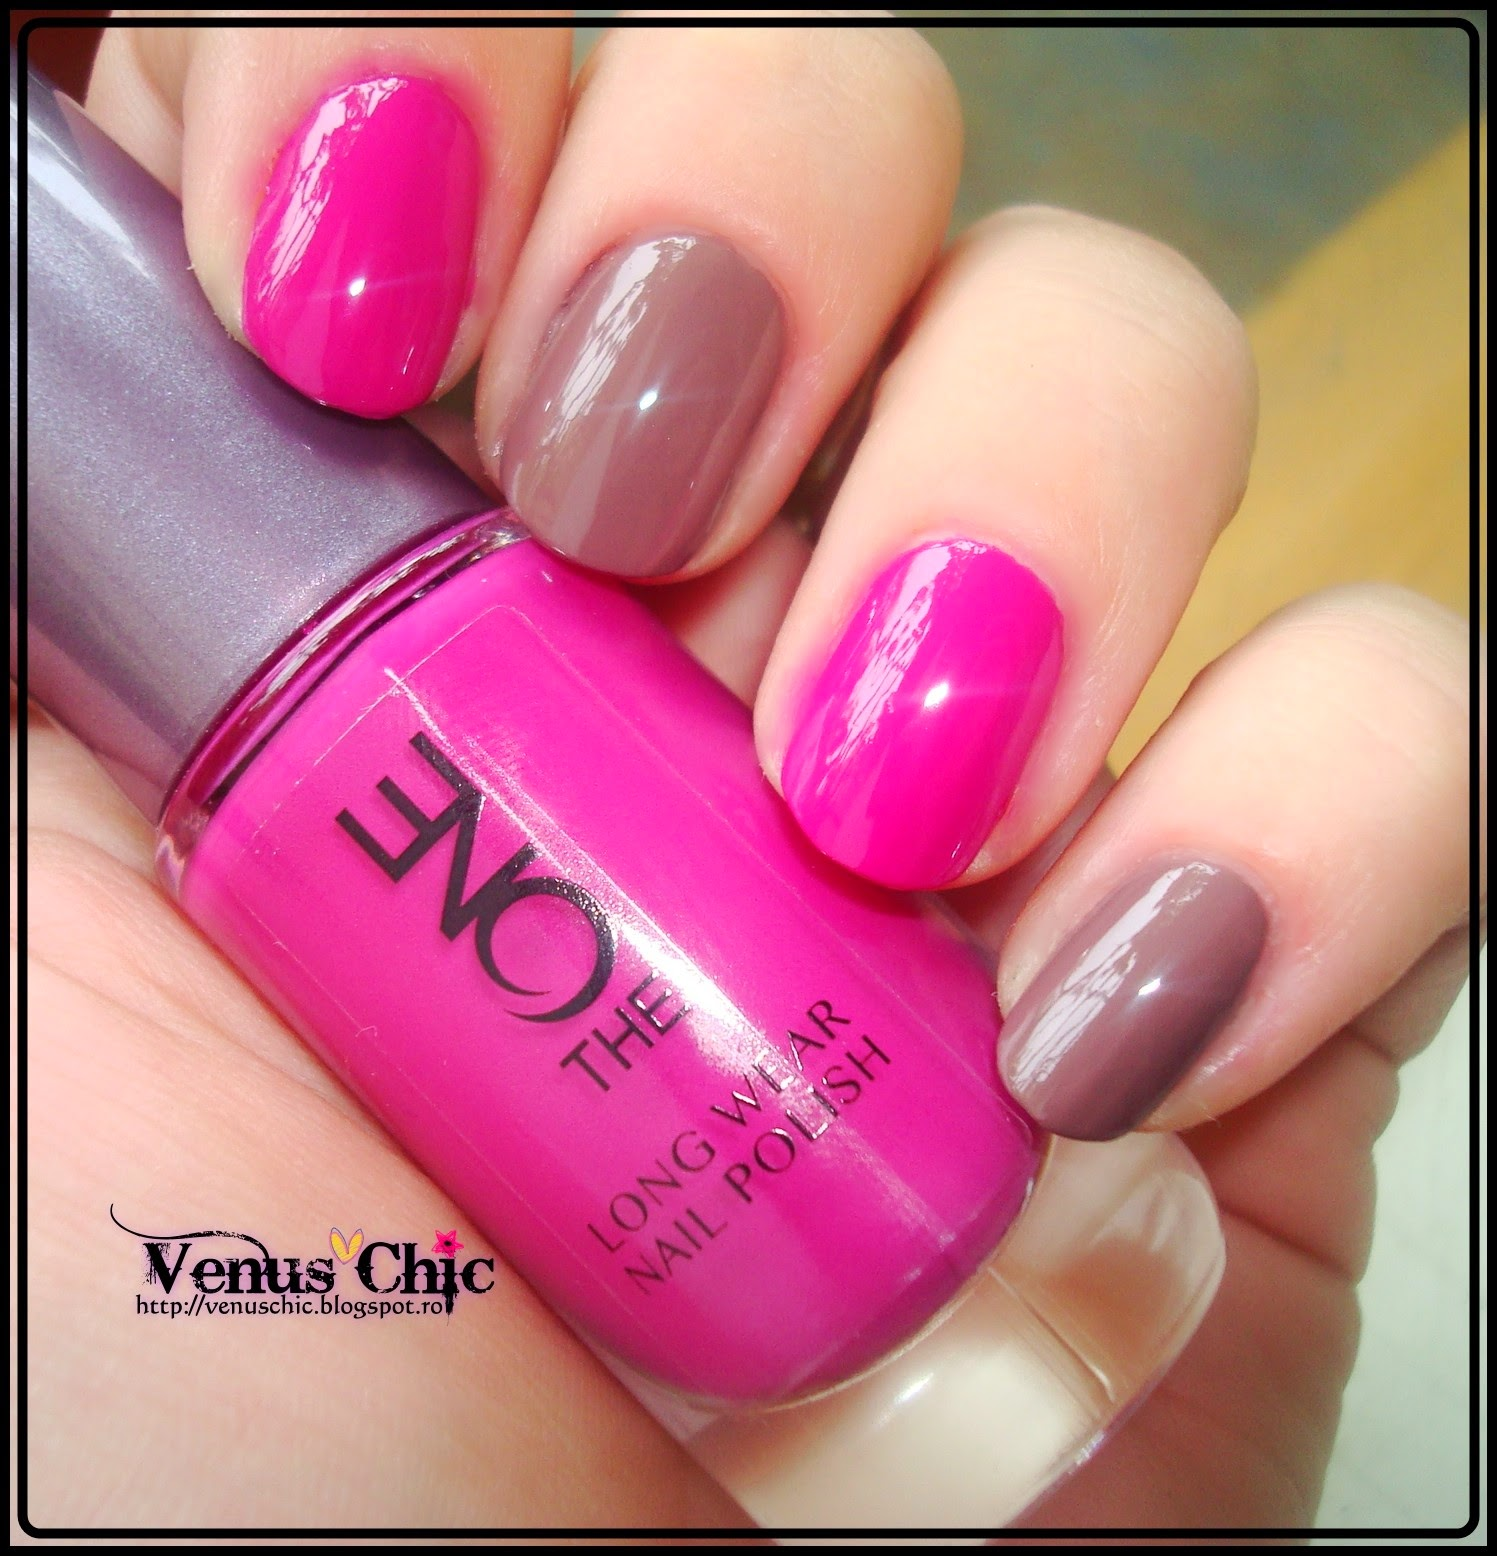 Venus Chic The One By Oriflame The One Long Wear Nail Polish Review Swatches